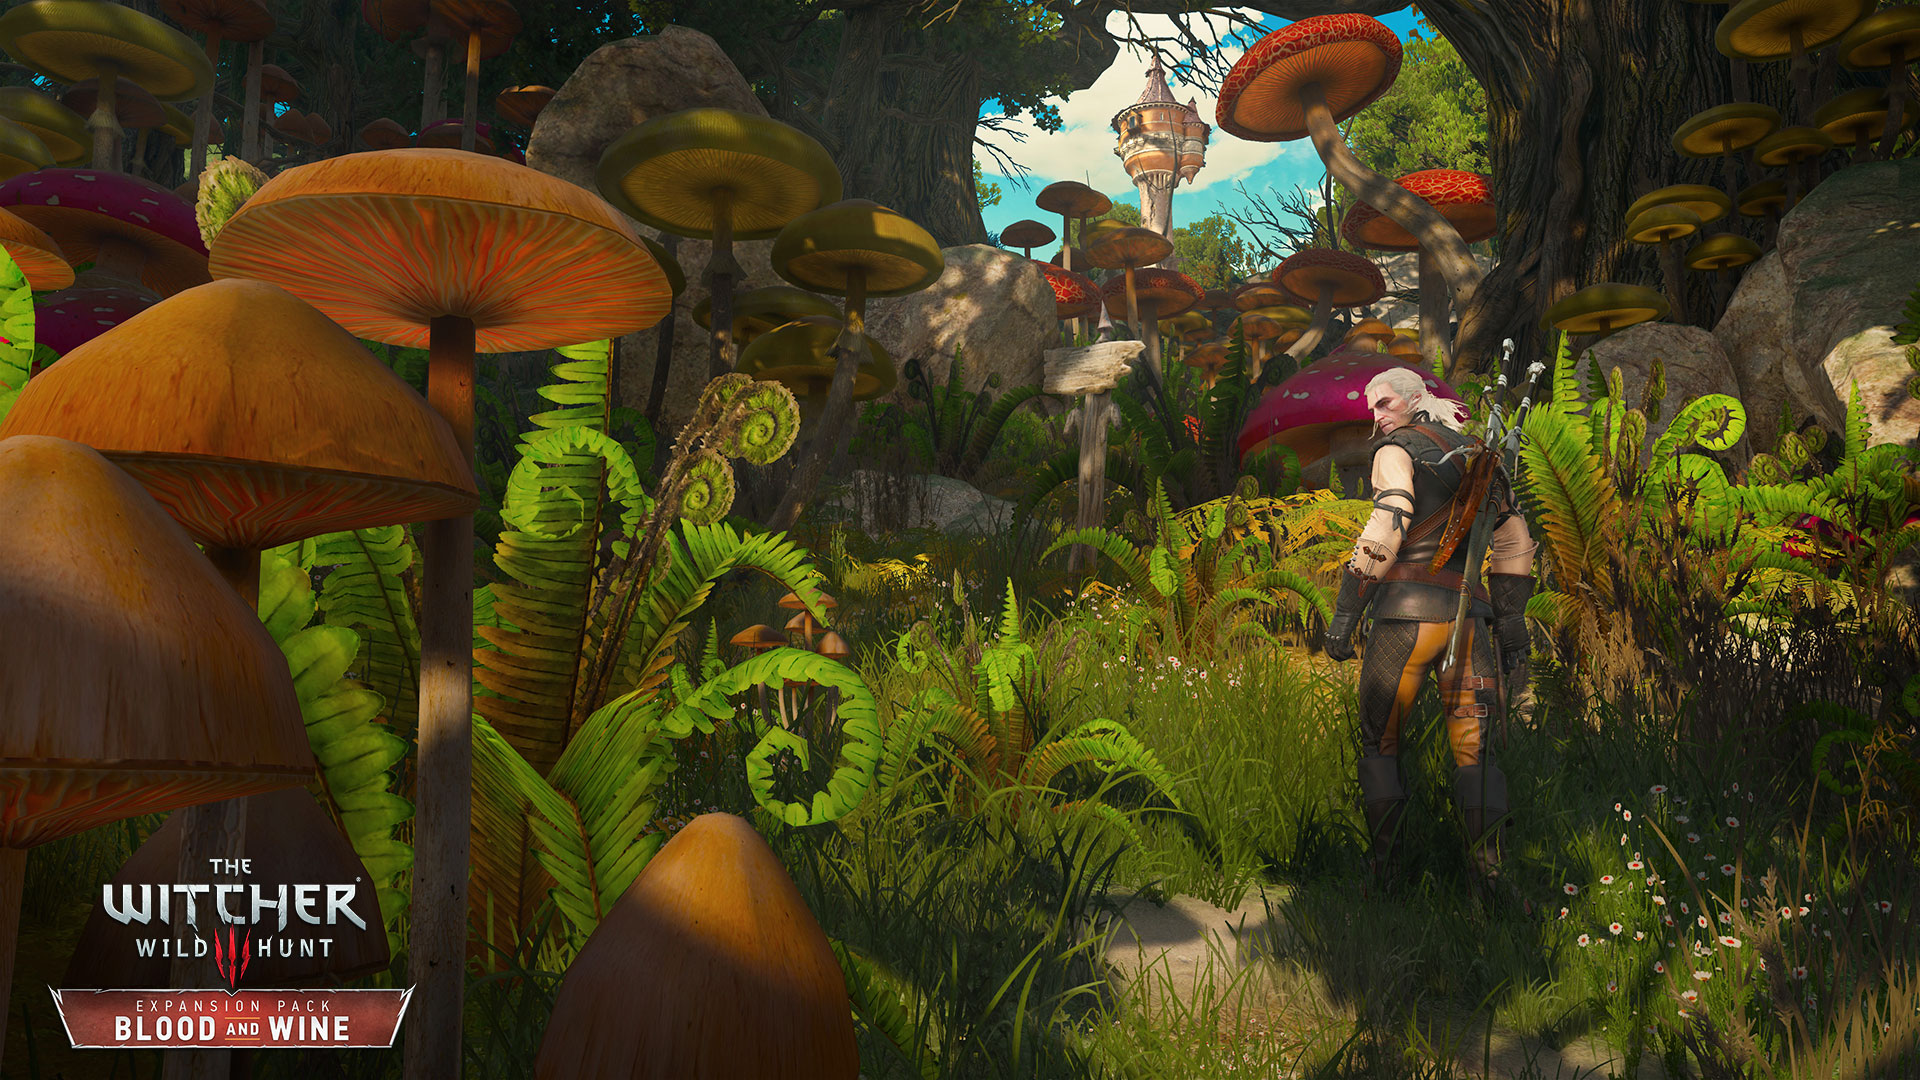 The Witcher 3: Blood and Wine Developer Diary   Nerd Reactor